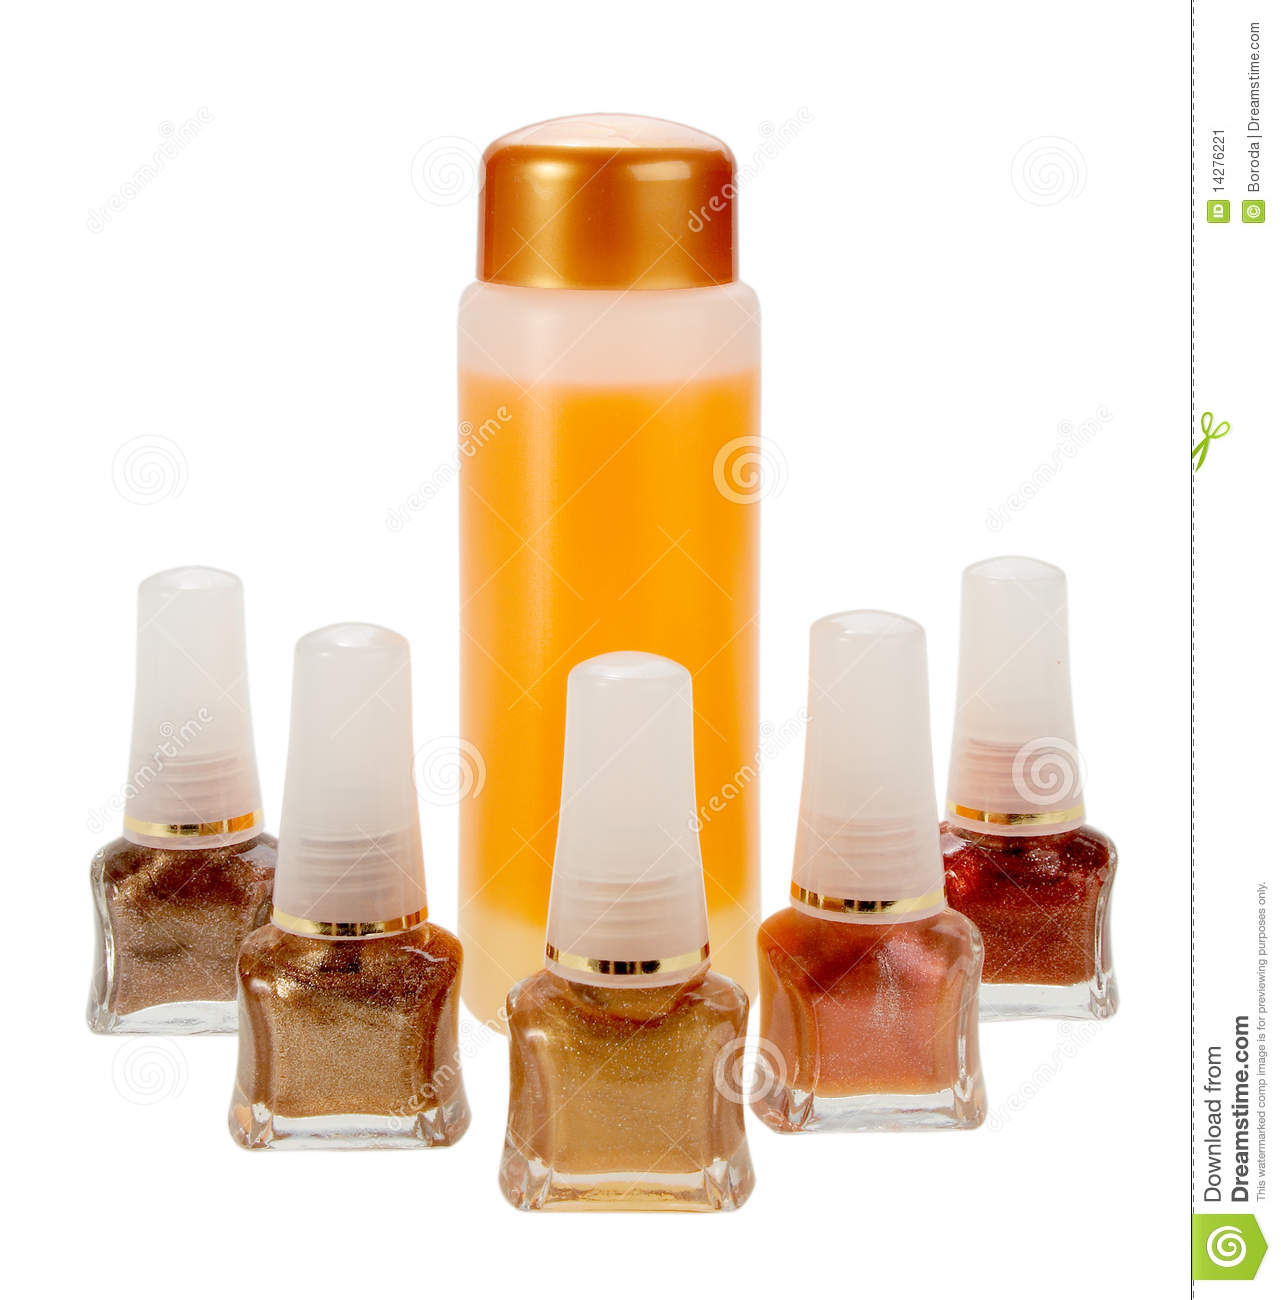 Gamma Of Nail Polish And Cream For Cleaning Stock Image